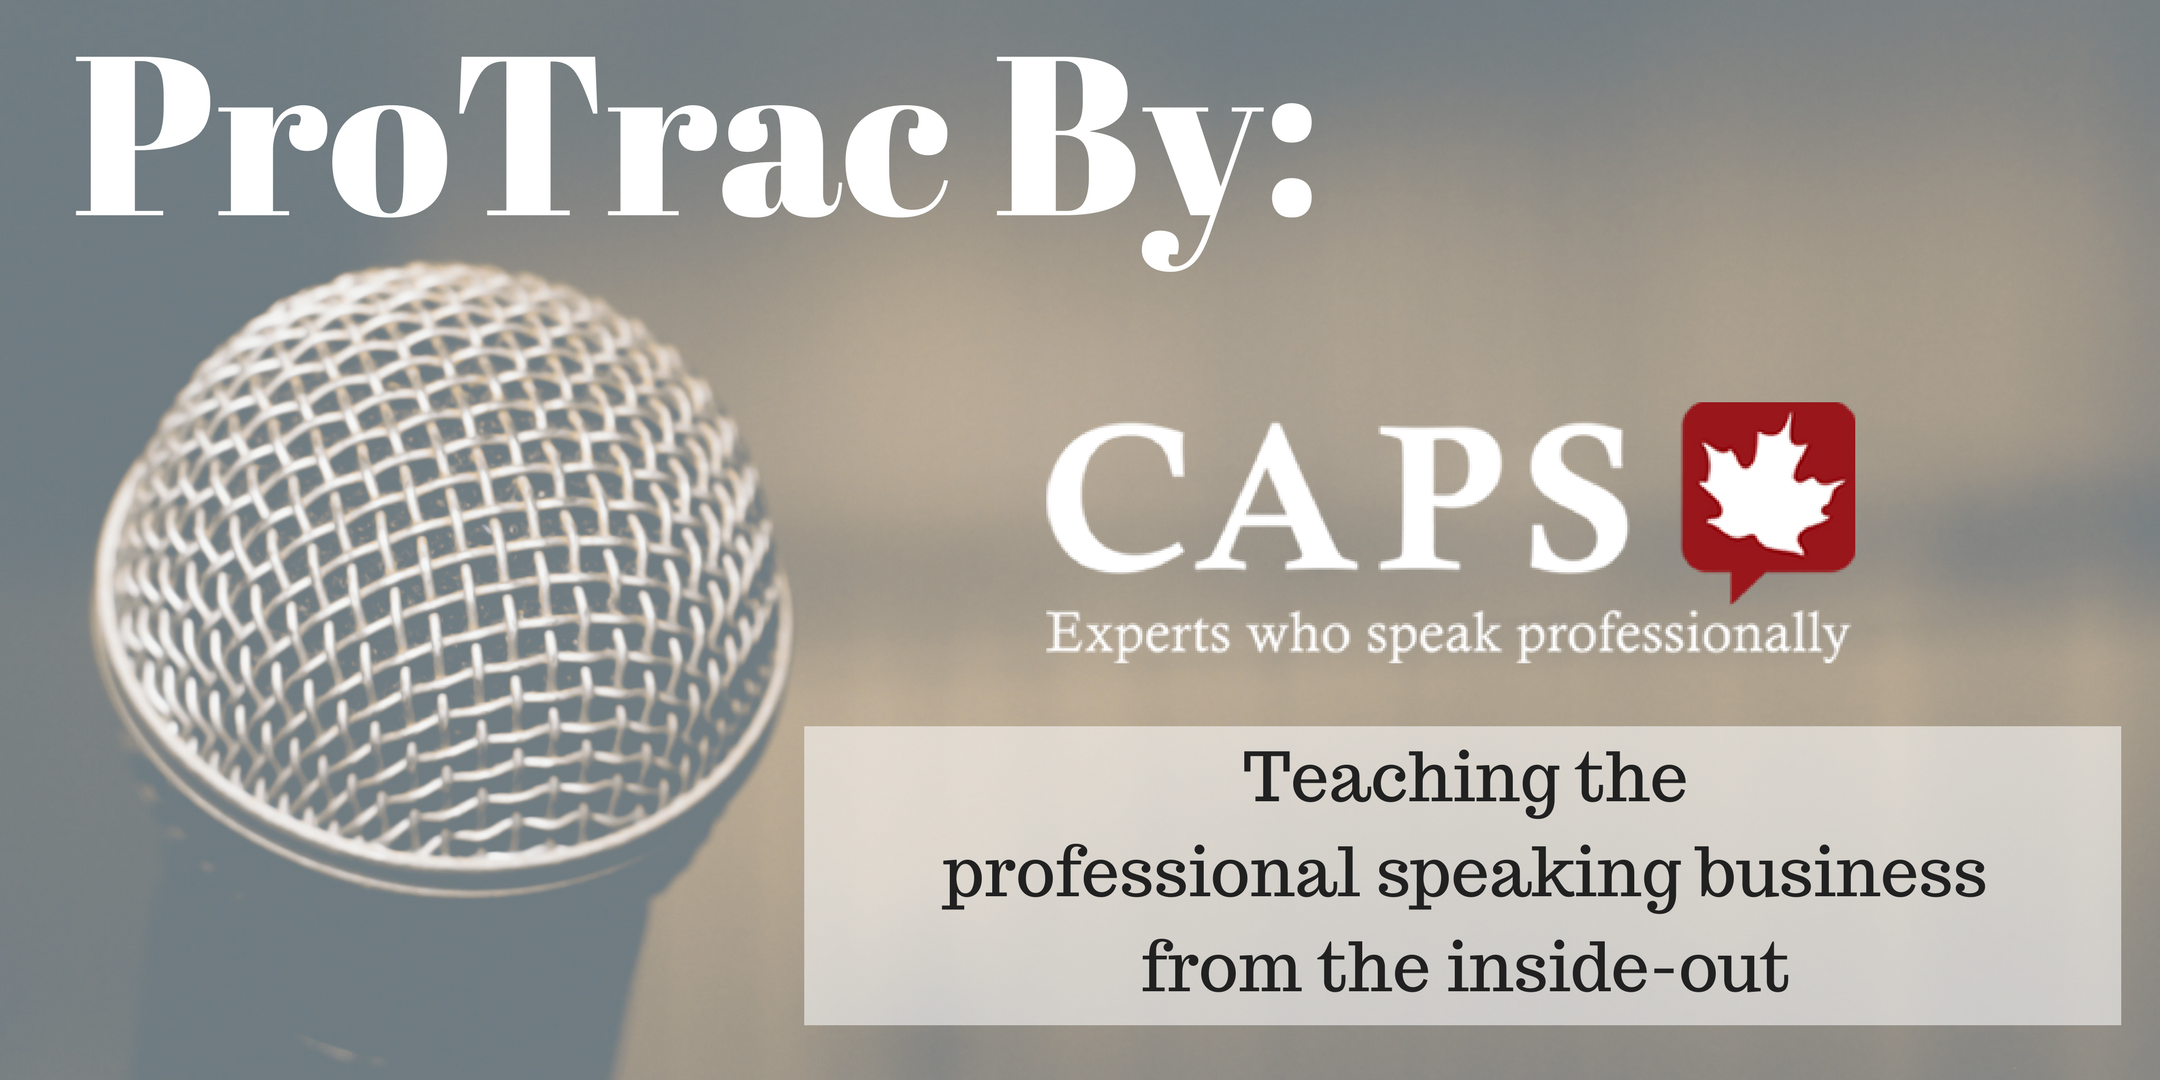 ProTrac is an initiative of CAPS Manitoba - Teaching the professional speaking business from the inside-out